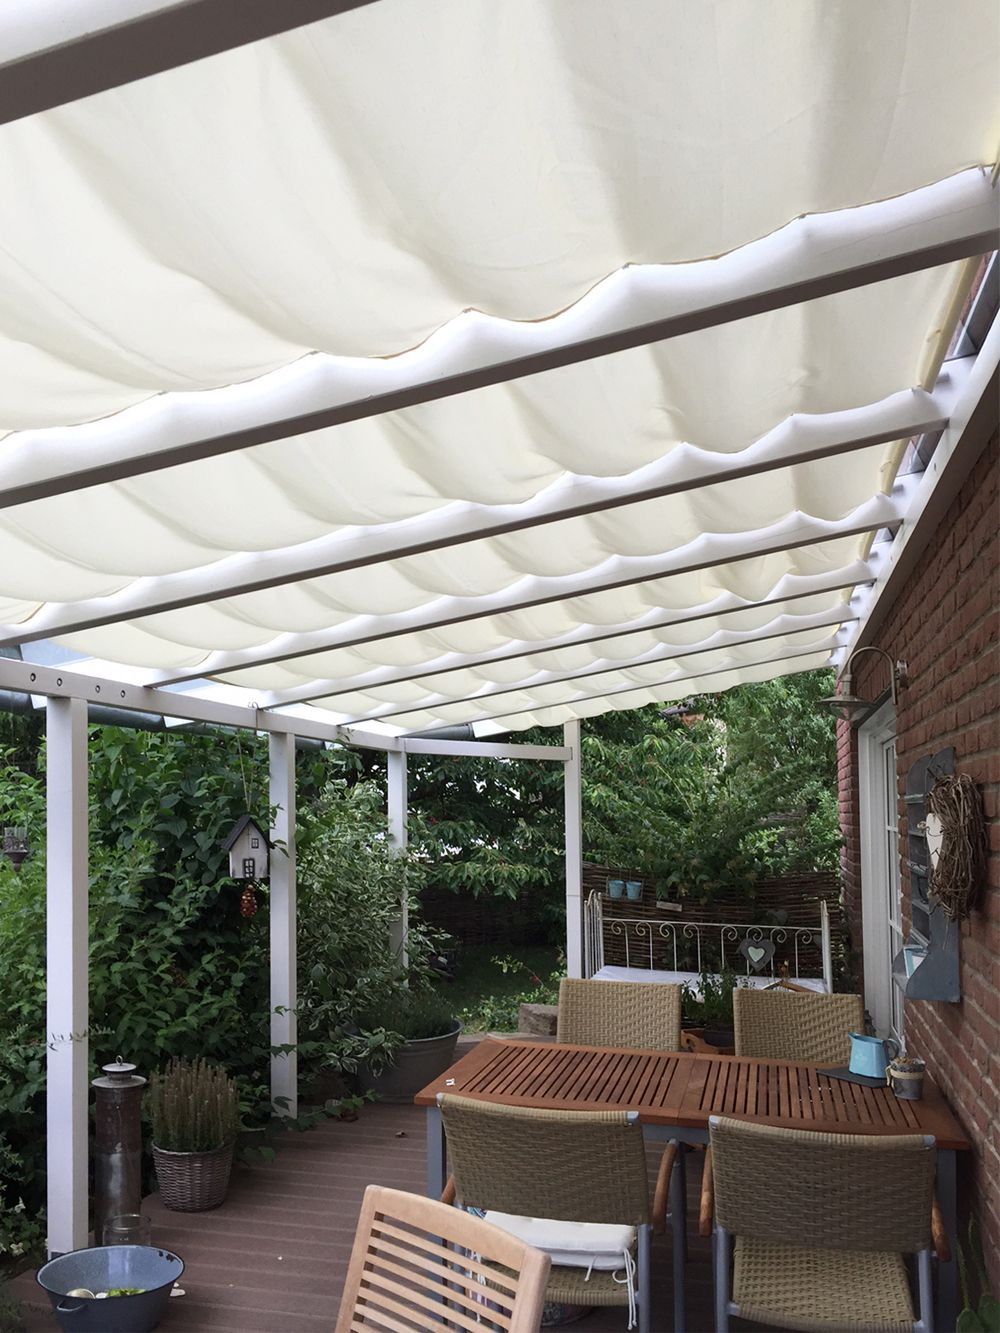 Patio roof screening   Shutters and Screens   Pinterest ...